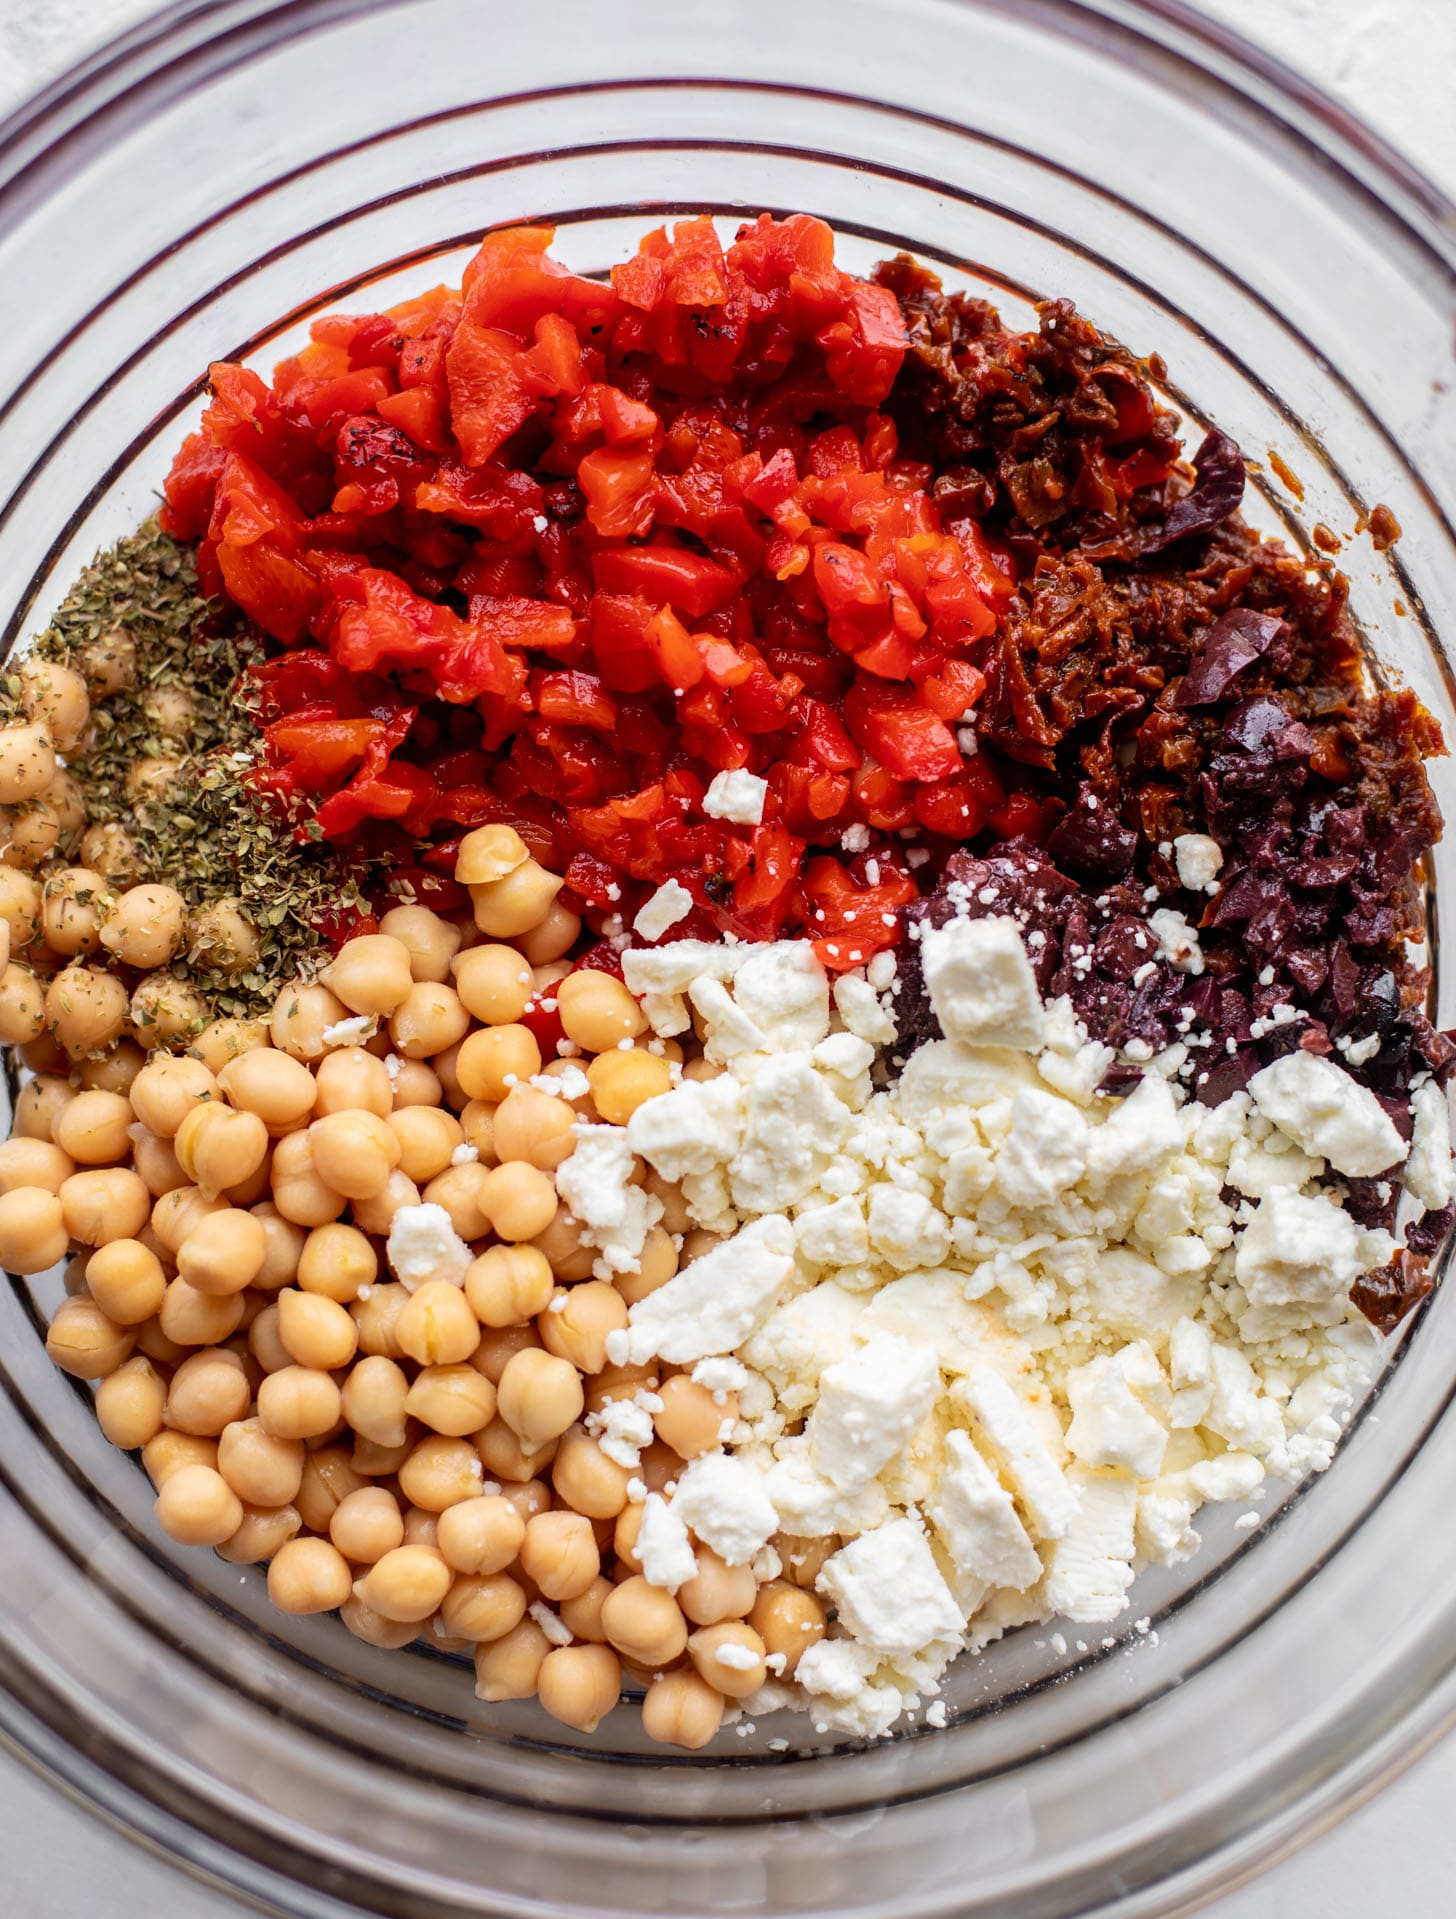 roasted red peppers, sun dried tomatoes, chickpeas, feta, spices